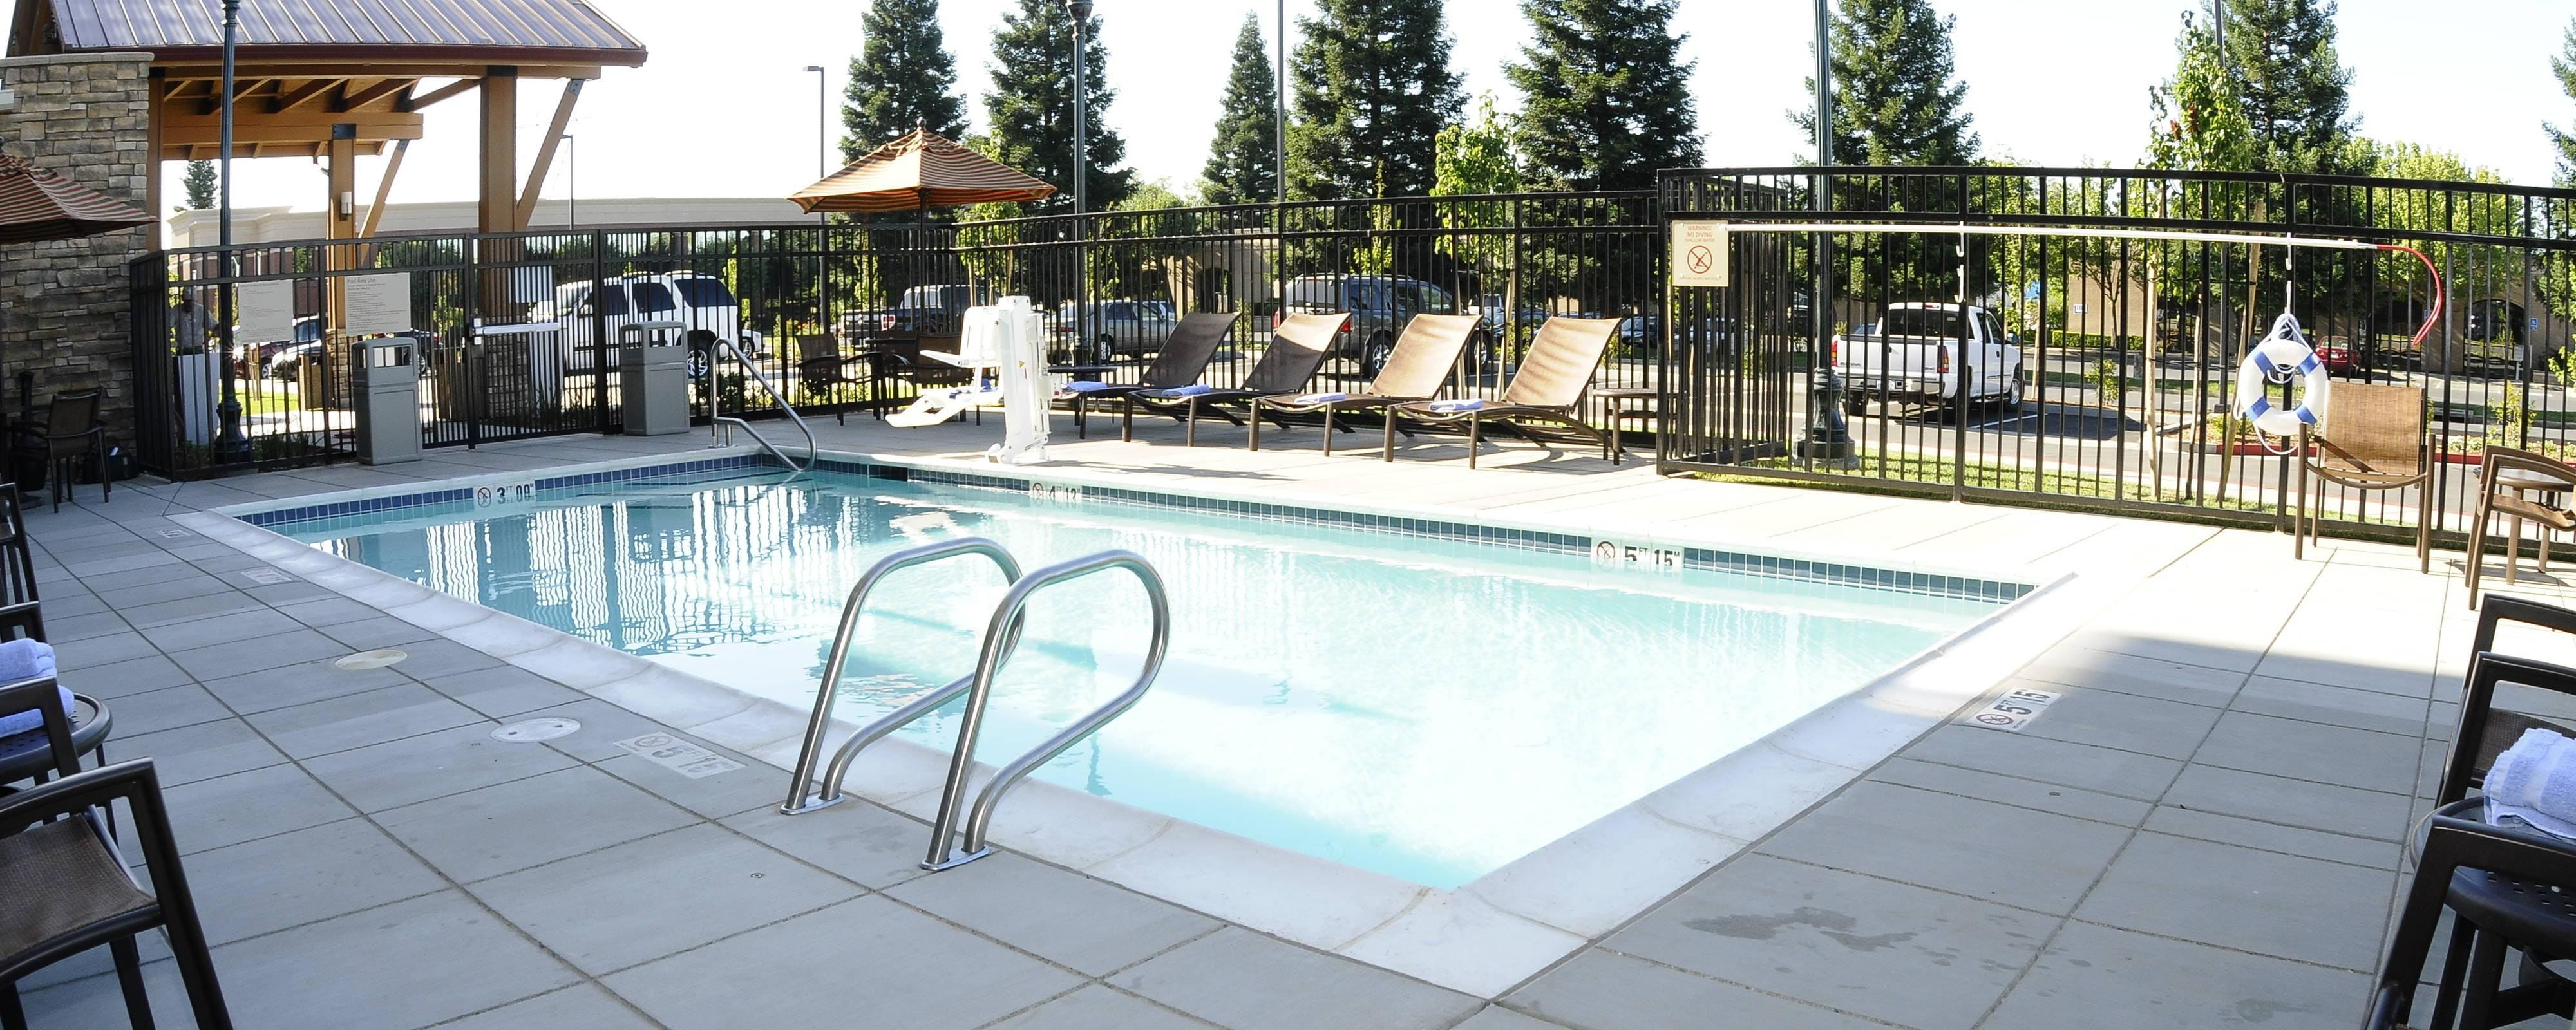 Piscine de l'hôtel TownePlace Suites Redding